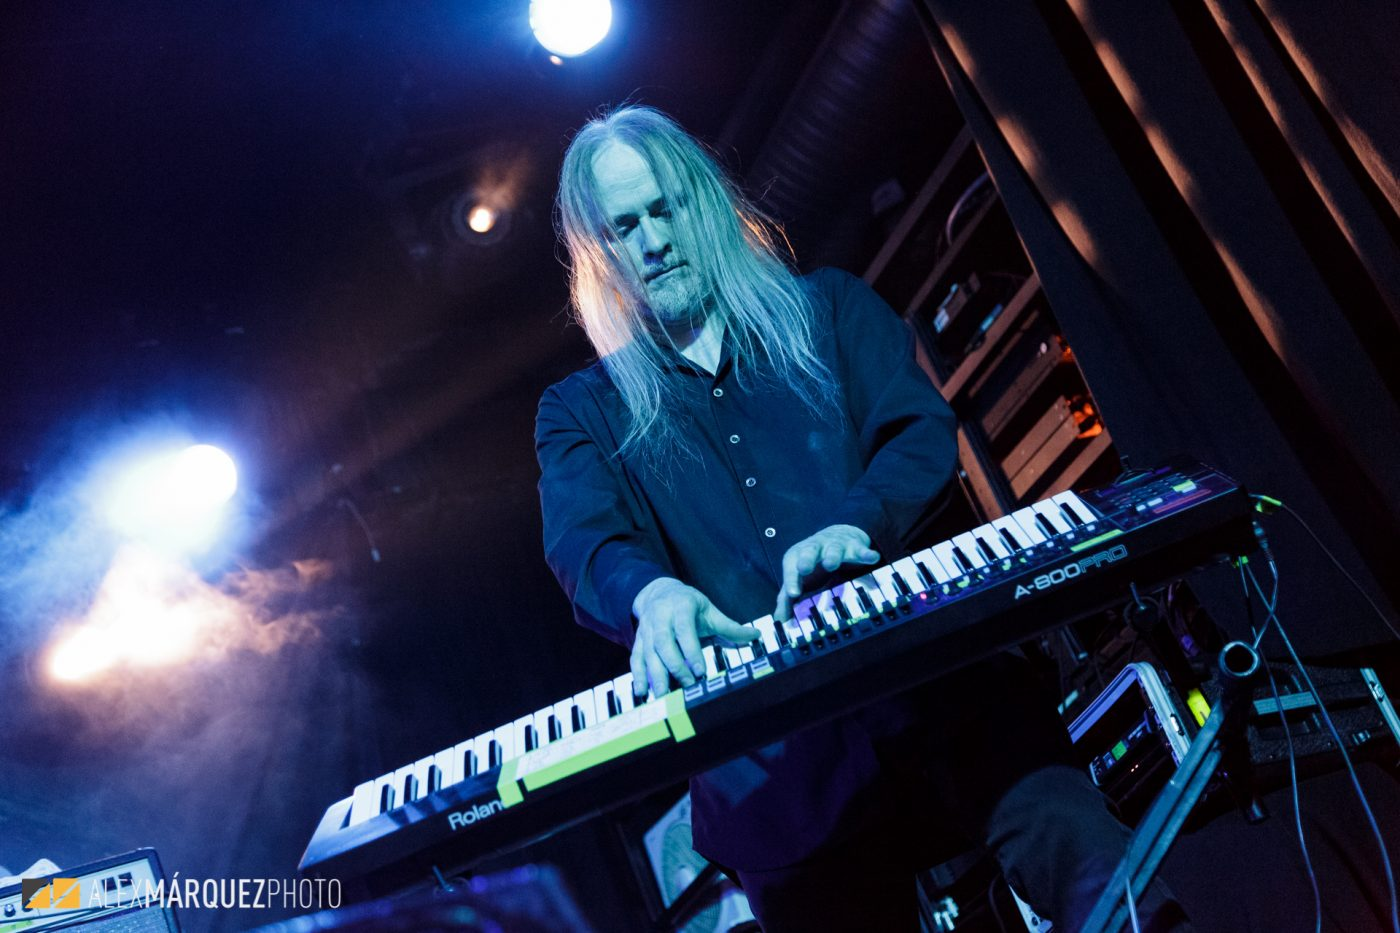 Stratovarius - Alex Márquez Photo